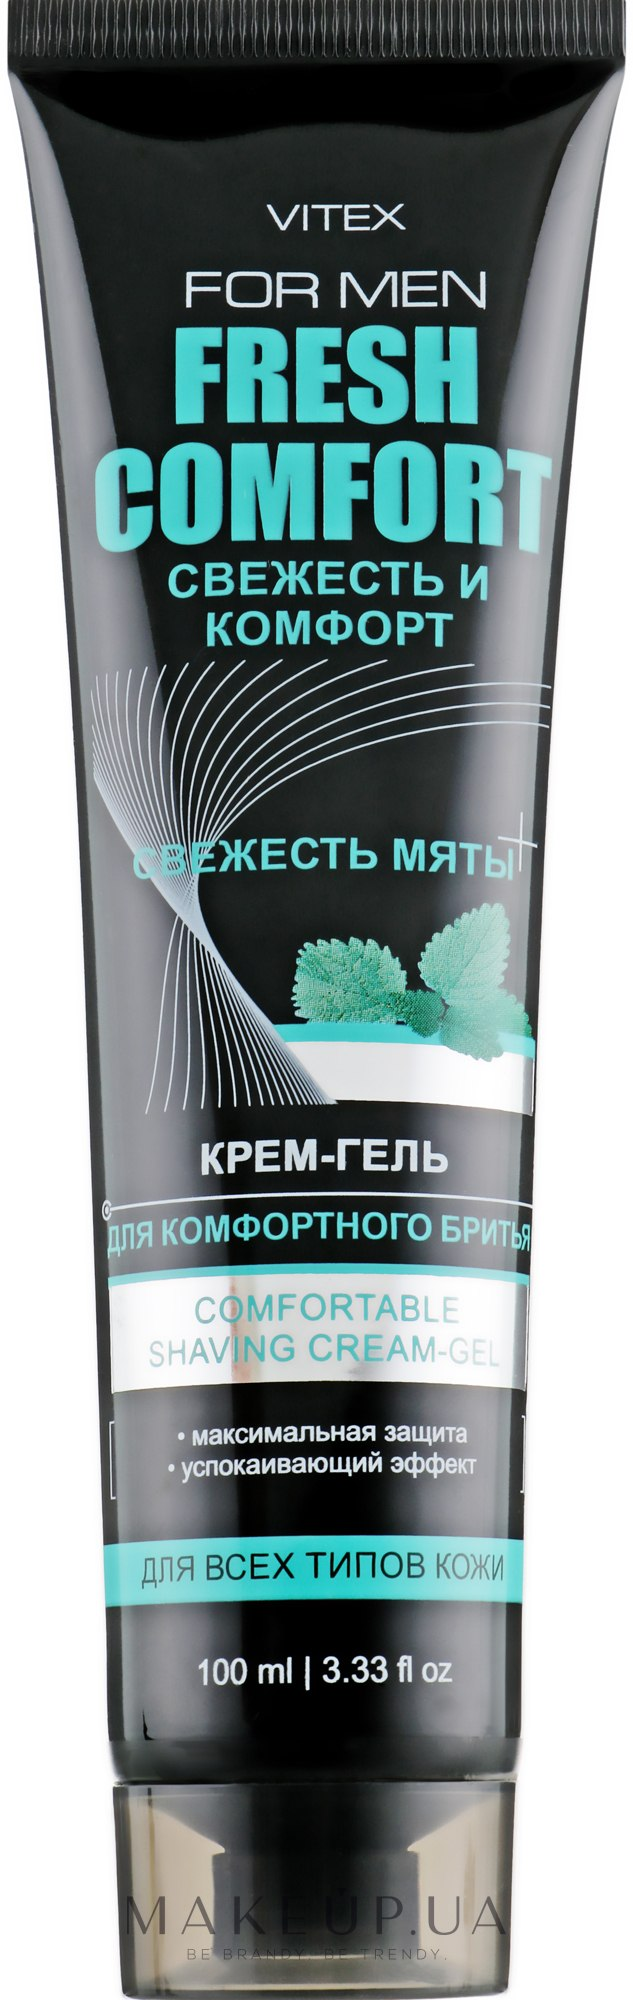 Крем-гель для комфортного бритья - Витэкс Vitex For Men Fresh Comfort — фото 100ml